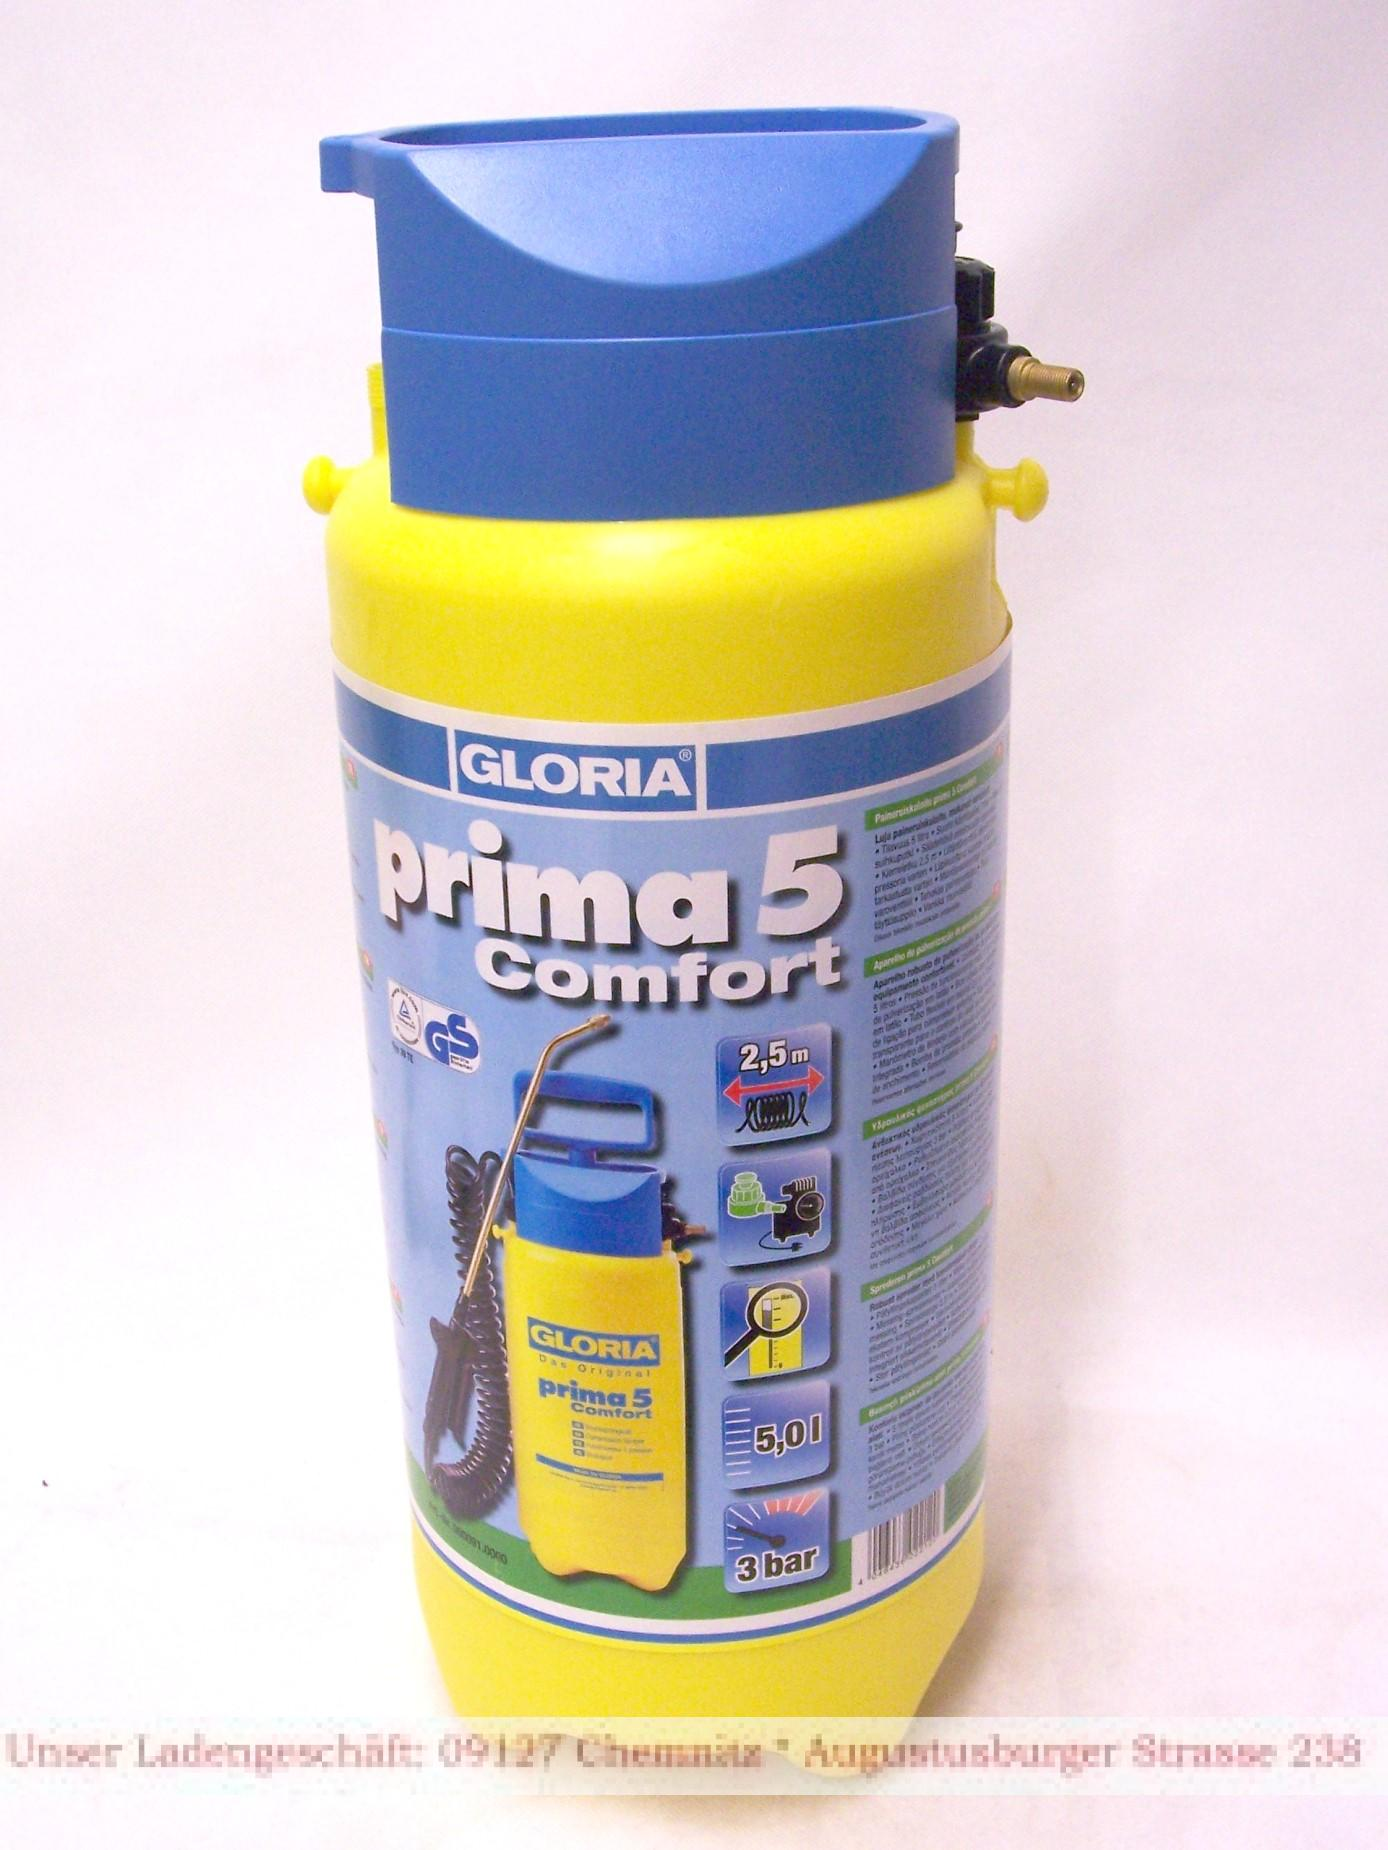 ersatzbeh lter druckspritze 5 liter gloria serie prima primex spray paint wh ebay. Black Bedroom Furniture Sets. Home Design Ideas